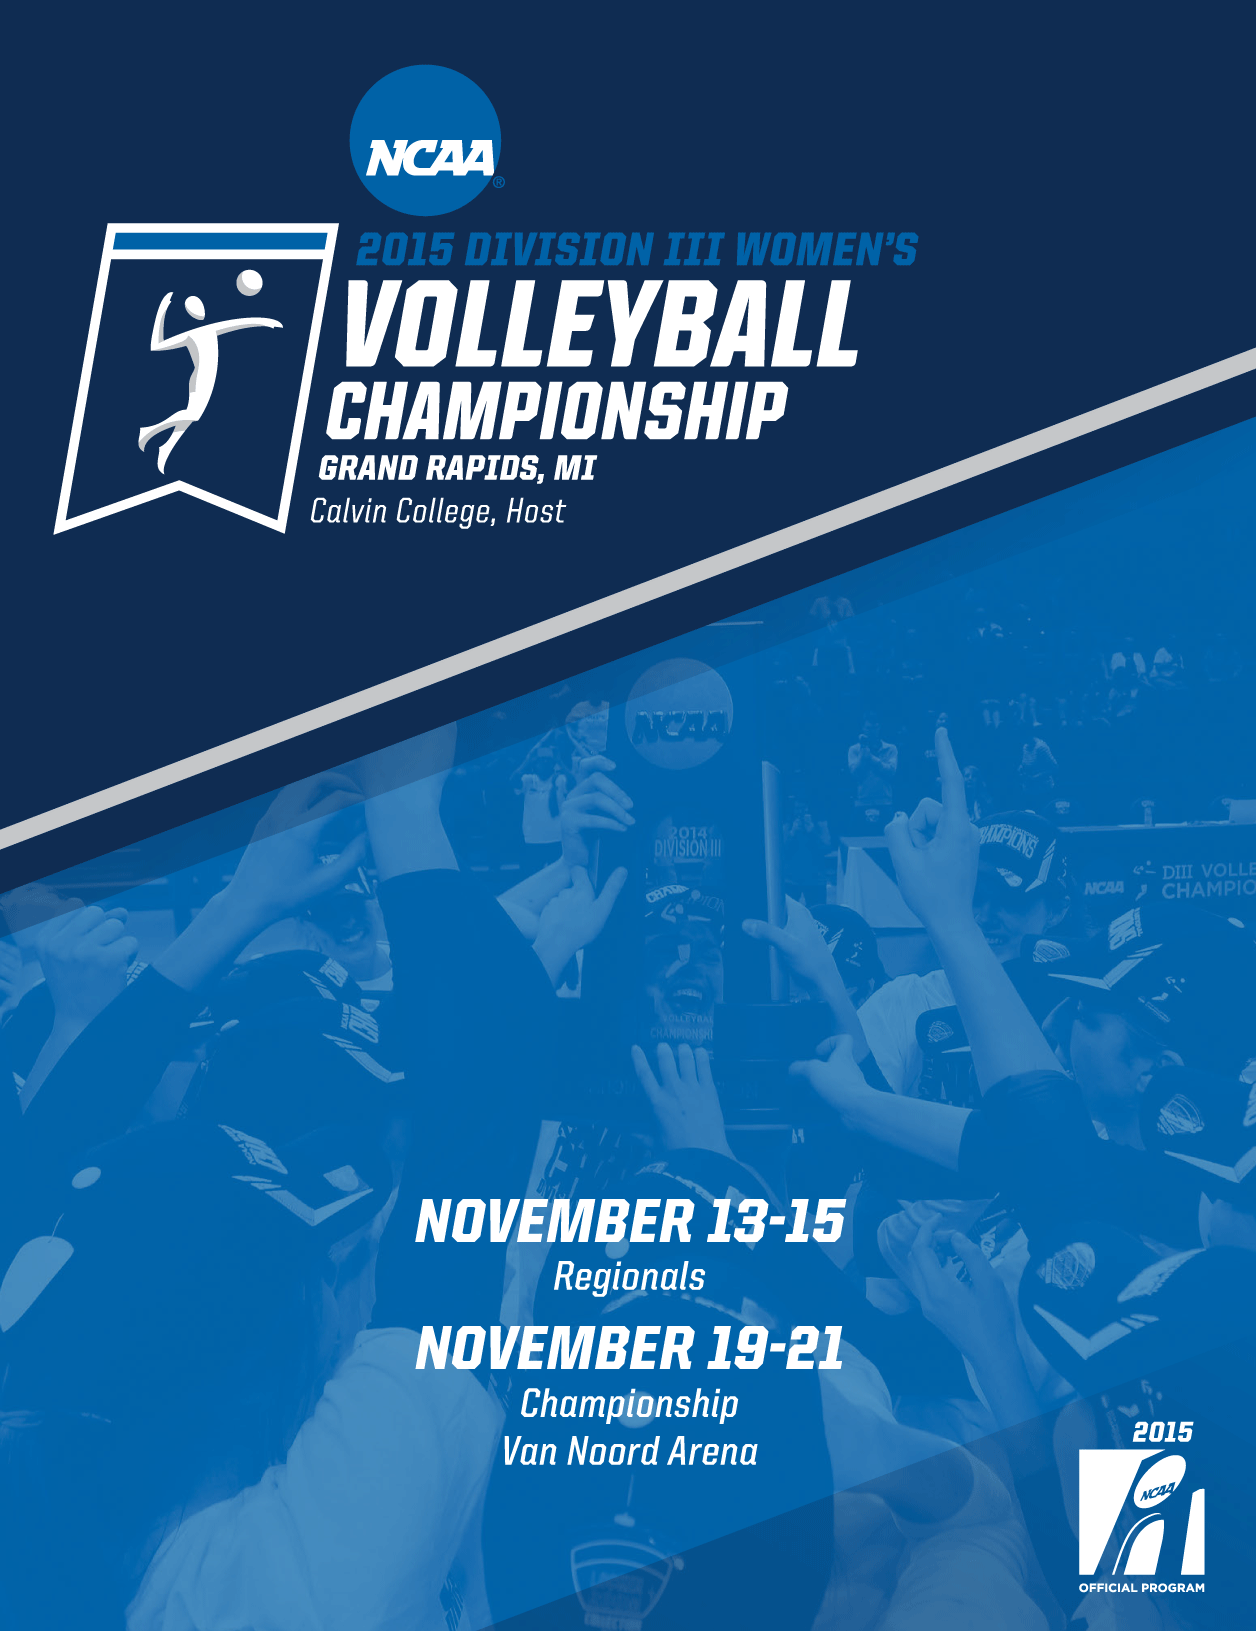 2015 Ncaa Division Iii Women S Volleyball Championship And Regionals Digital Guide Ncaad3 Divisioniii Ncaavolleyball Ncaa Women Volleyball Ncaa Championship